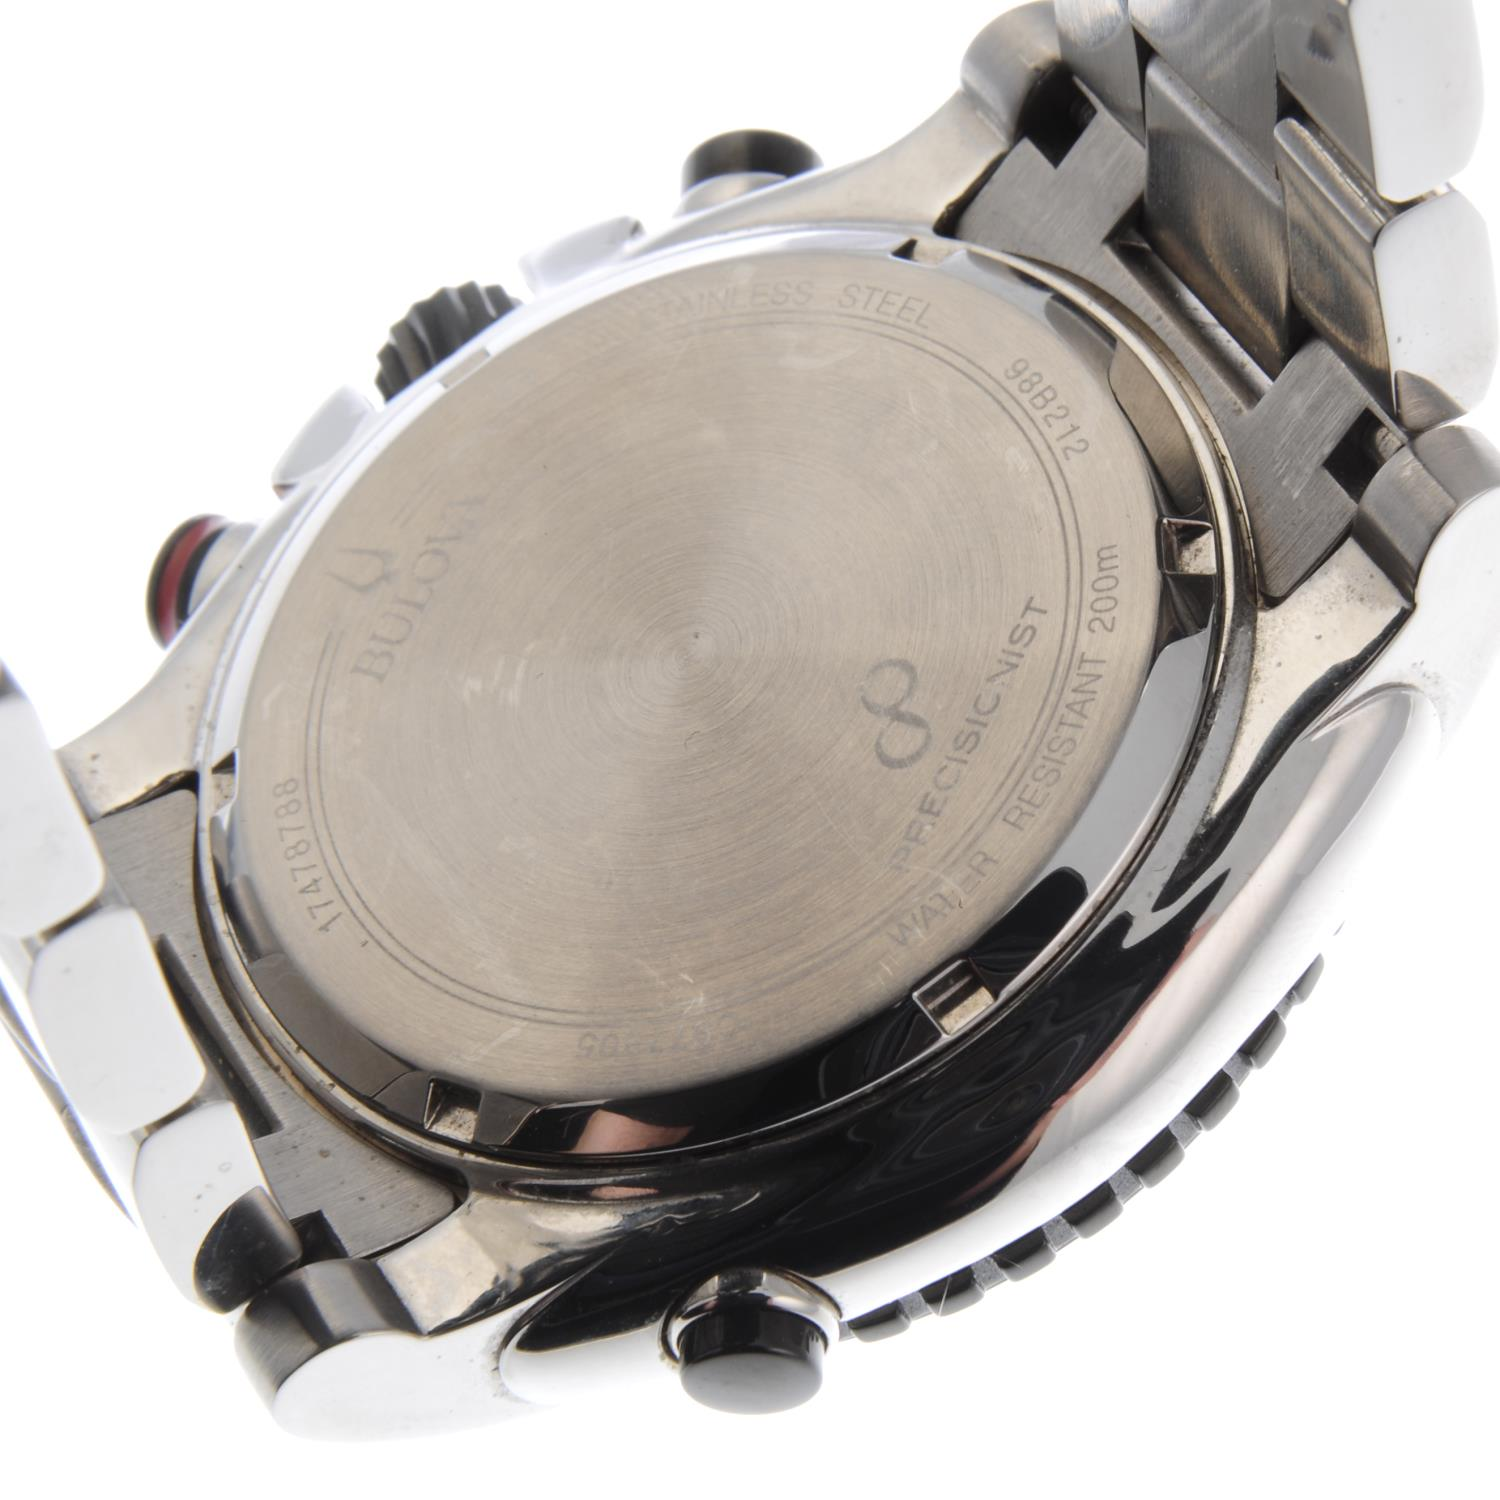 Lot 30 - BULOVA - a gentleman's Precisionist chronograph bracelet watch.